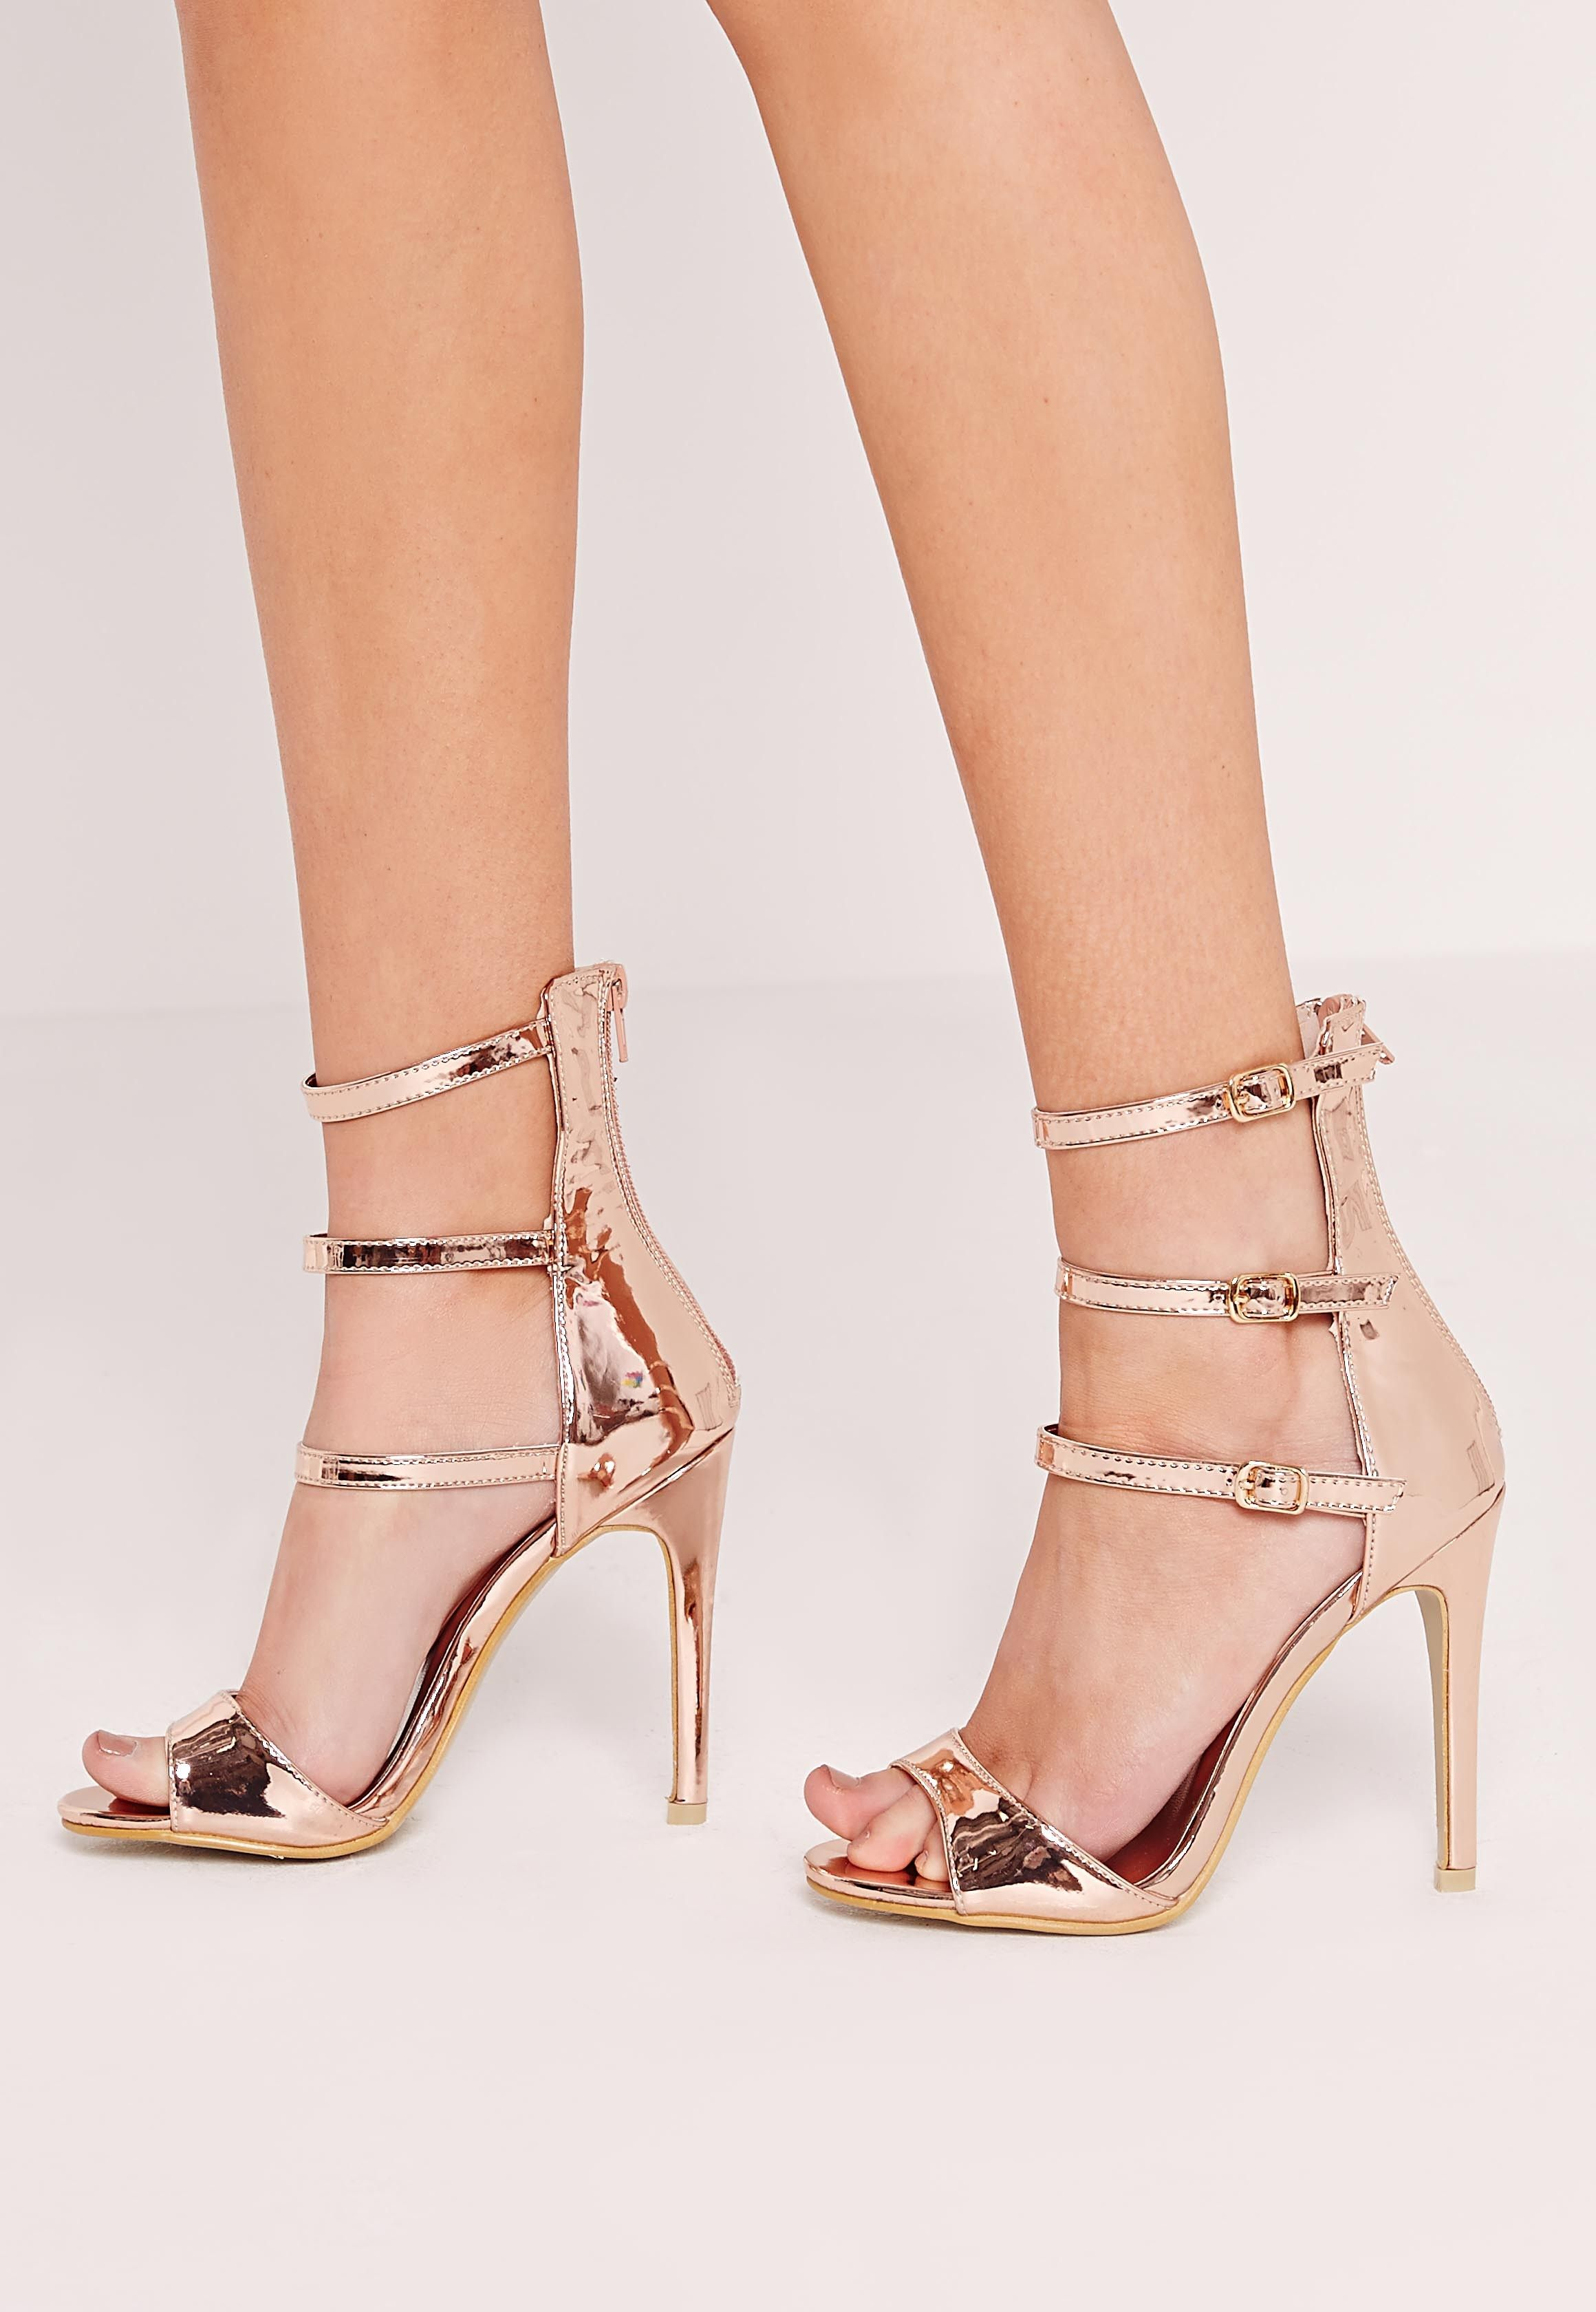 37015955442e Missguided - Rose Gold Buckle Three Strap Barely There Heels